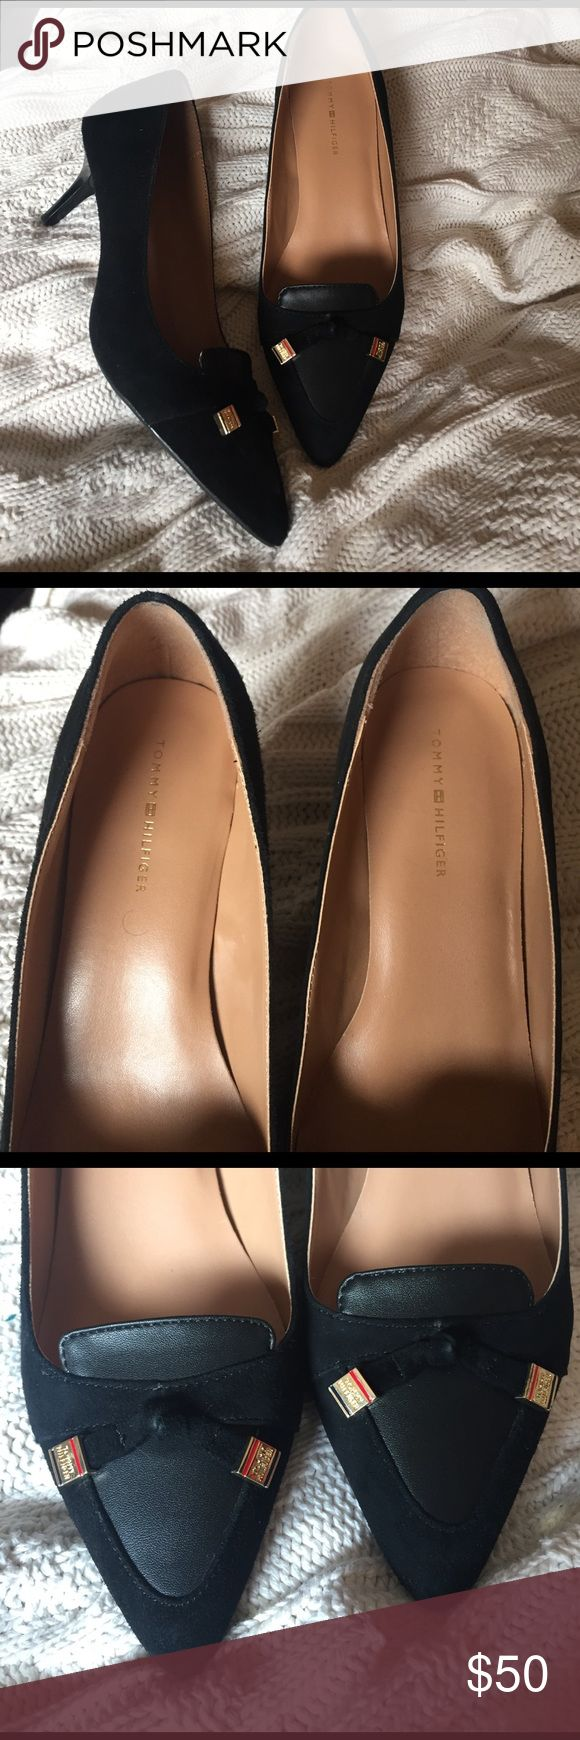 Tommy Hilfiger Juline pumps kitten heel suede chic Beautiful shoes in excellent condition. Only worn a couple of times. So chic and smart! They look great with capris or a pencil skirt. Black suede with leather accents. Good hardware that says Tommy Hilfiger Tommy Hilfiger Shoes Heels